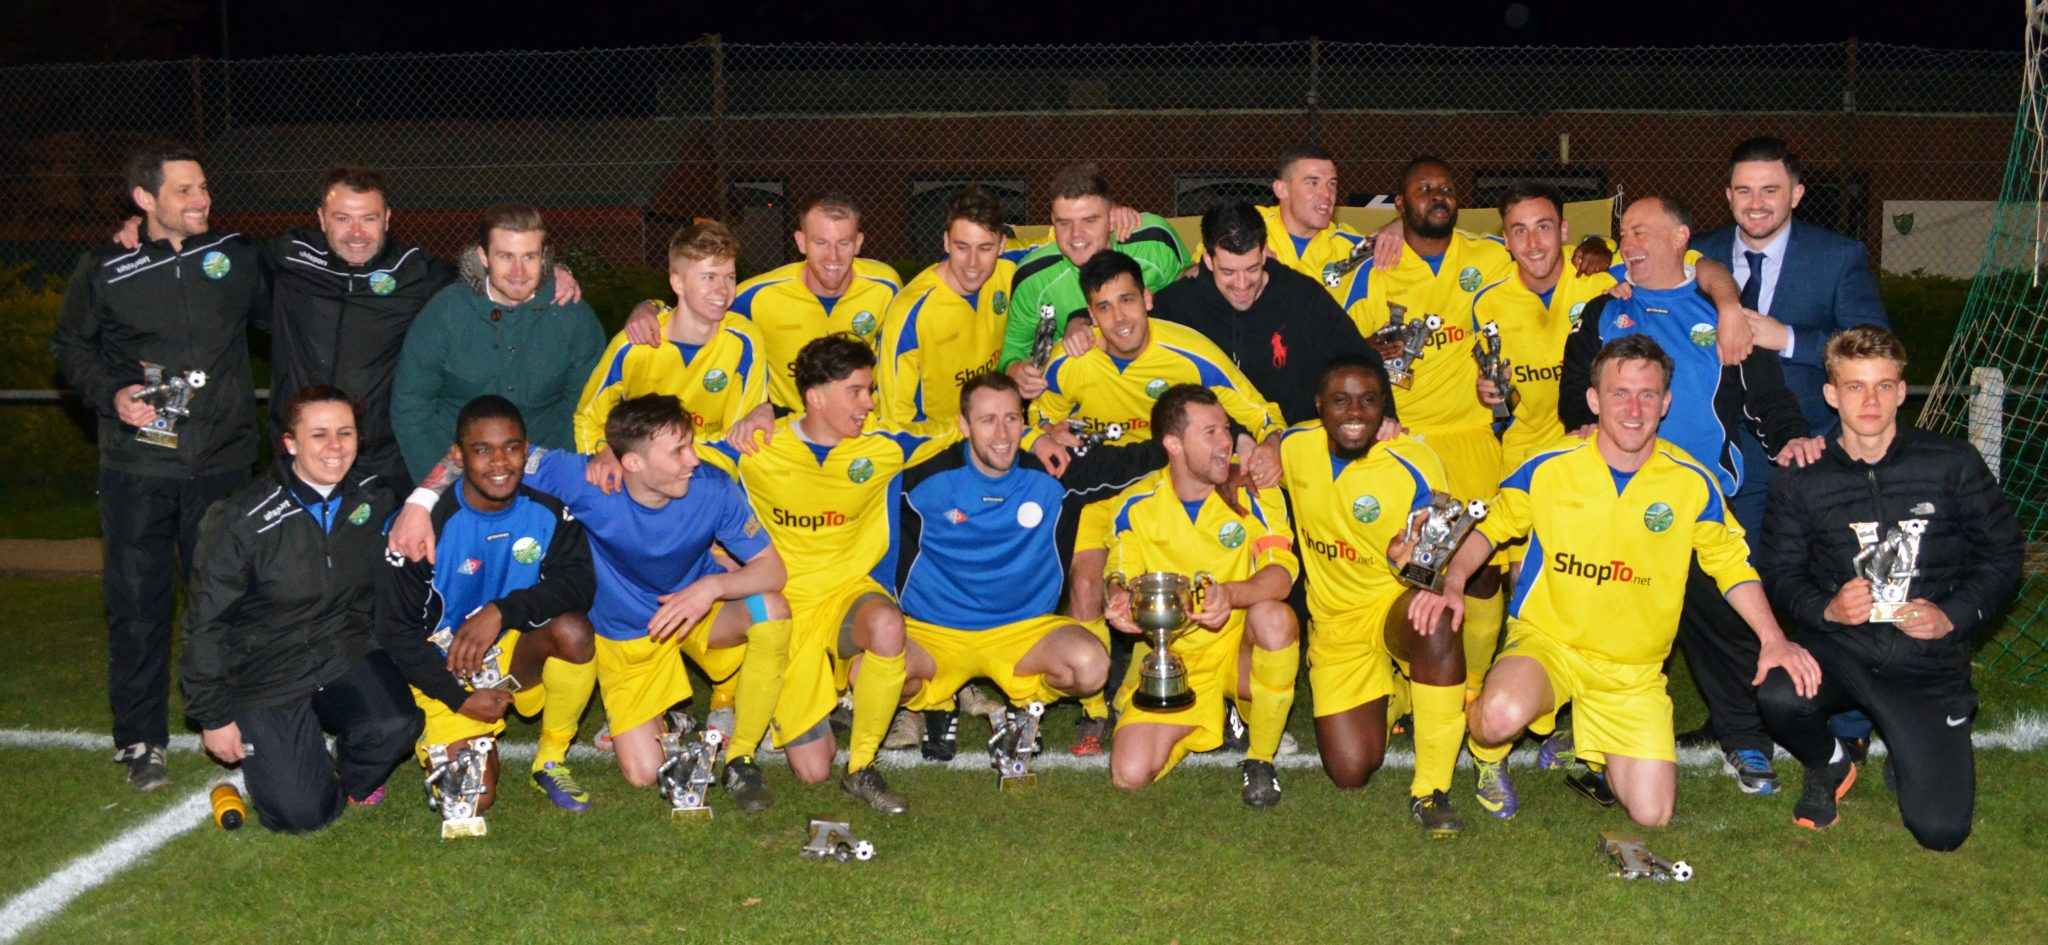 Photos from Ascot Uniteds Floodlit Cup win